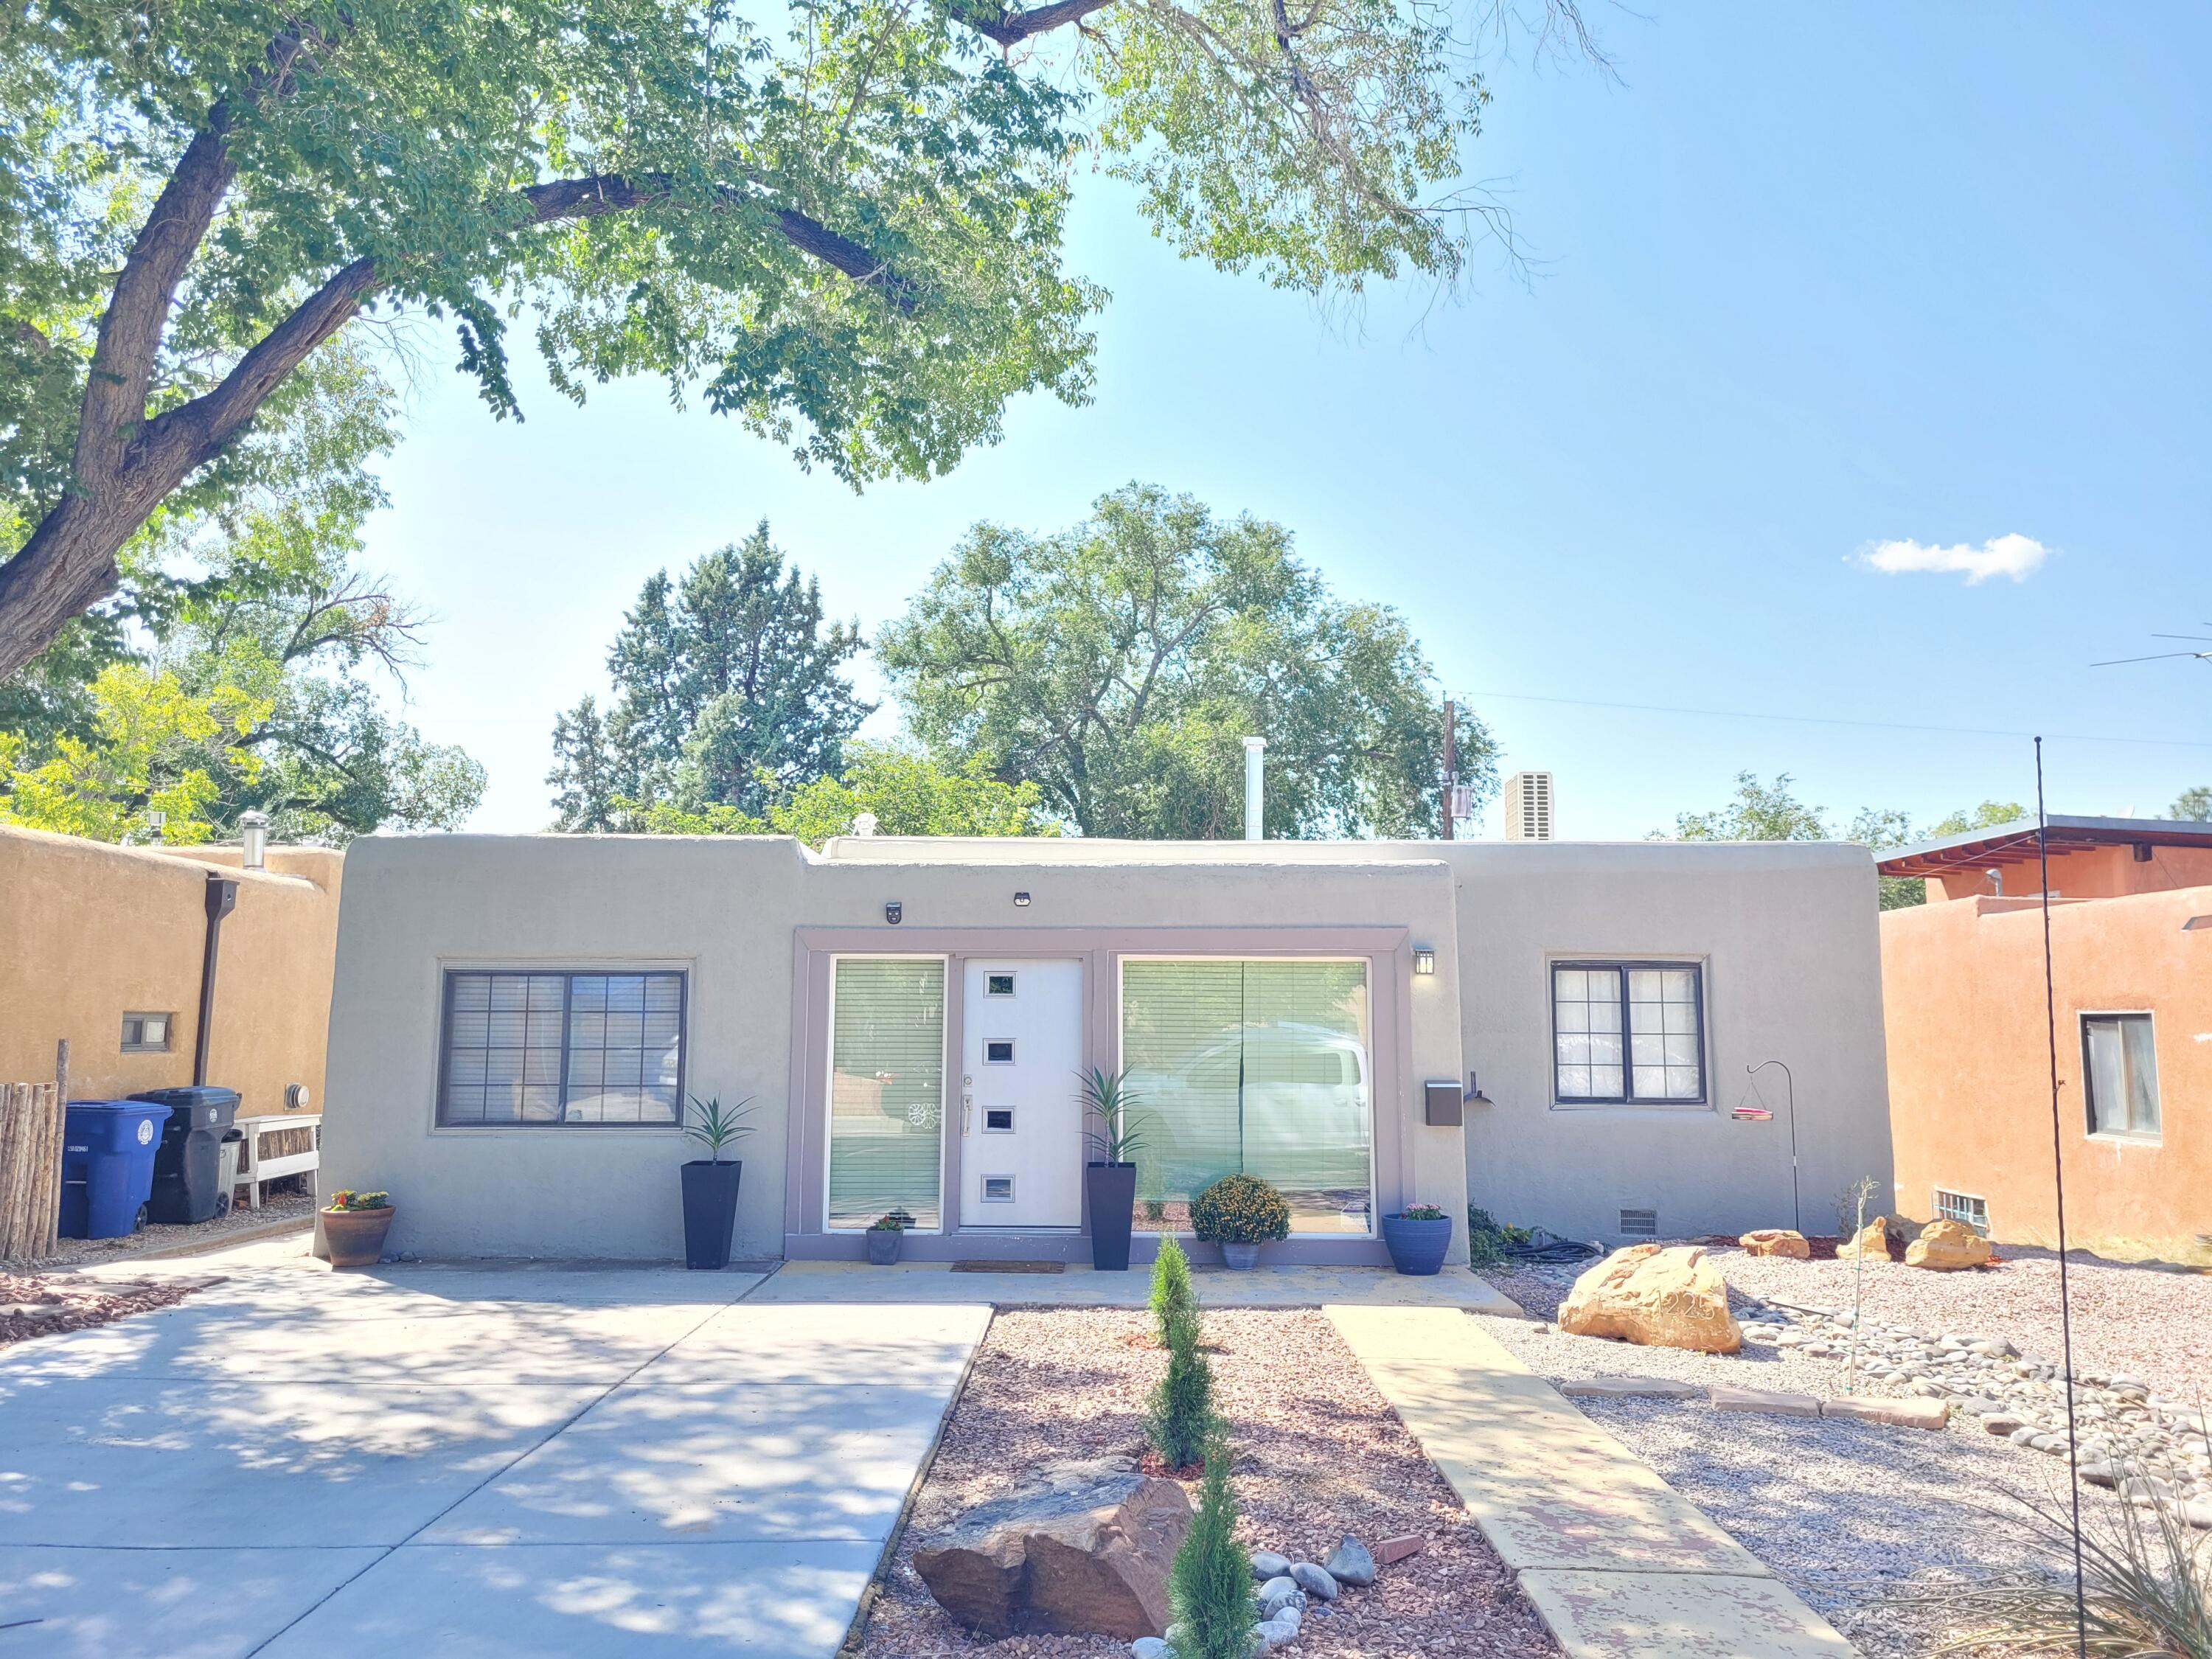 Main House: 3 bed, 2 bath, 1581 sq/ft.  Casita: 1 bed, 1 bath, 460 sq/ft. Casita was built in 2020 and is permitted. The property is an active Vacation rental, booked most of the time. Great location near UNM hospital, golf course, Nob Hill. Live in one, rent the other, rent both, or its a Great Multi-generational property.  Some updates: Upgraded electrical 2019, TPO roof 2019, Mini Splits, 5 heads Jan 2021, Solar- OWNED 2019, Full bathroom 2018, Entrance windows and door 2019, Tile floors in kitchen 2019, Stainless steel appliances 2020. Lots of natural light, beautiful wood floors and cove ceilings. Easy to maintain xeriscape yard. The Casita has its own separate entrance, a living area, bedroom, laundry room, bath, and kitchenette. Built in 2020 with metal roof and refrigerated air.